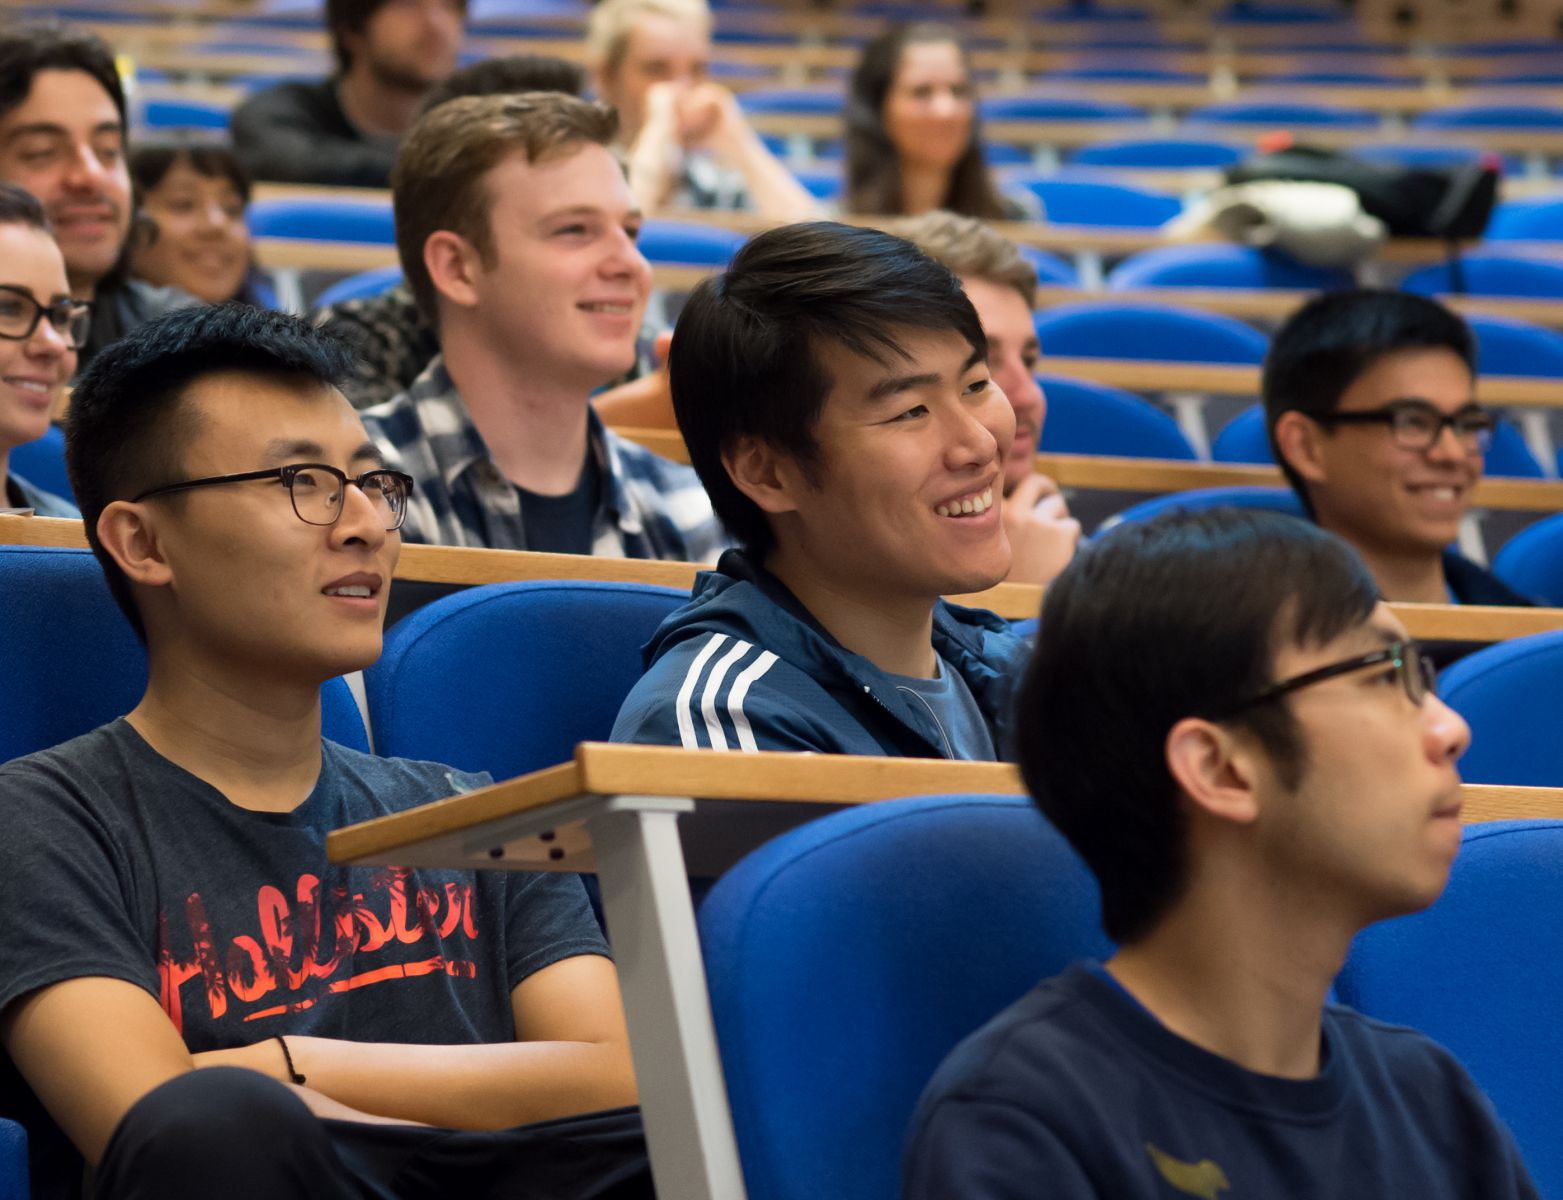 Students in a lecture at the University of Sussex